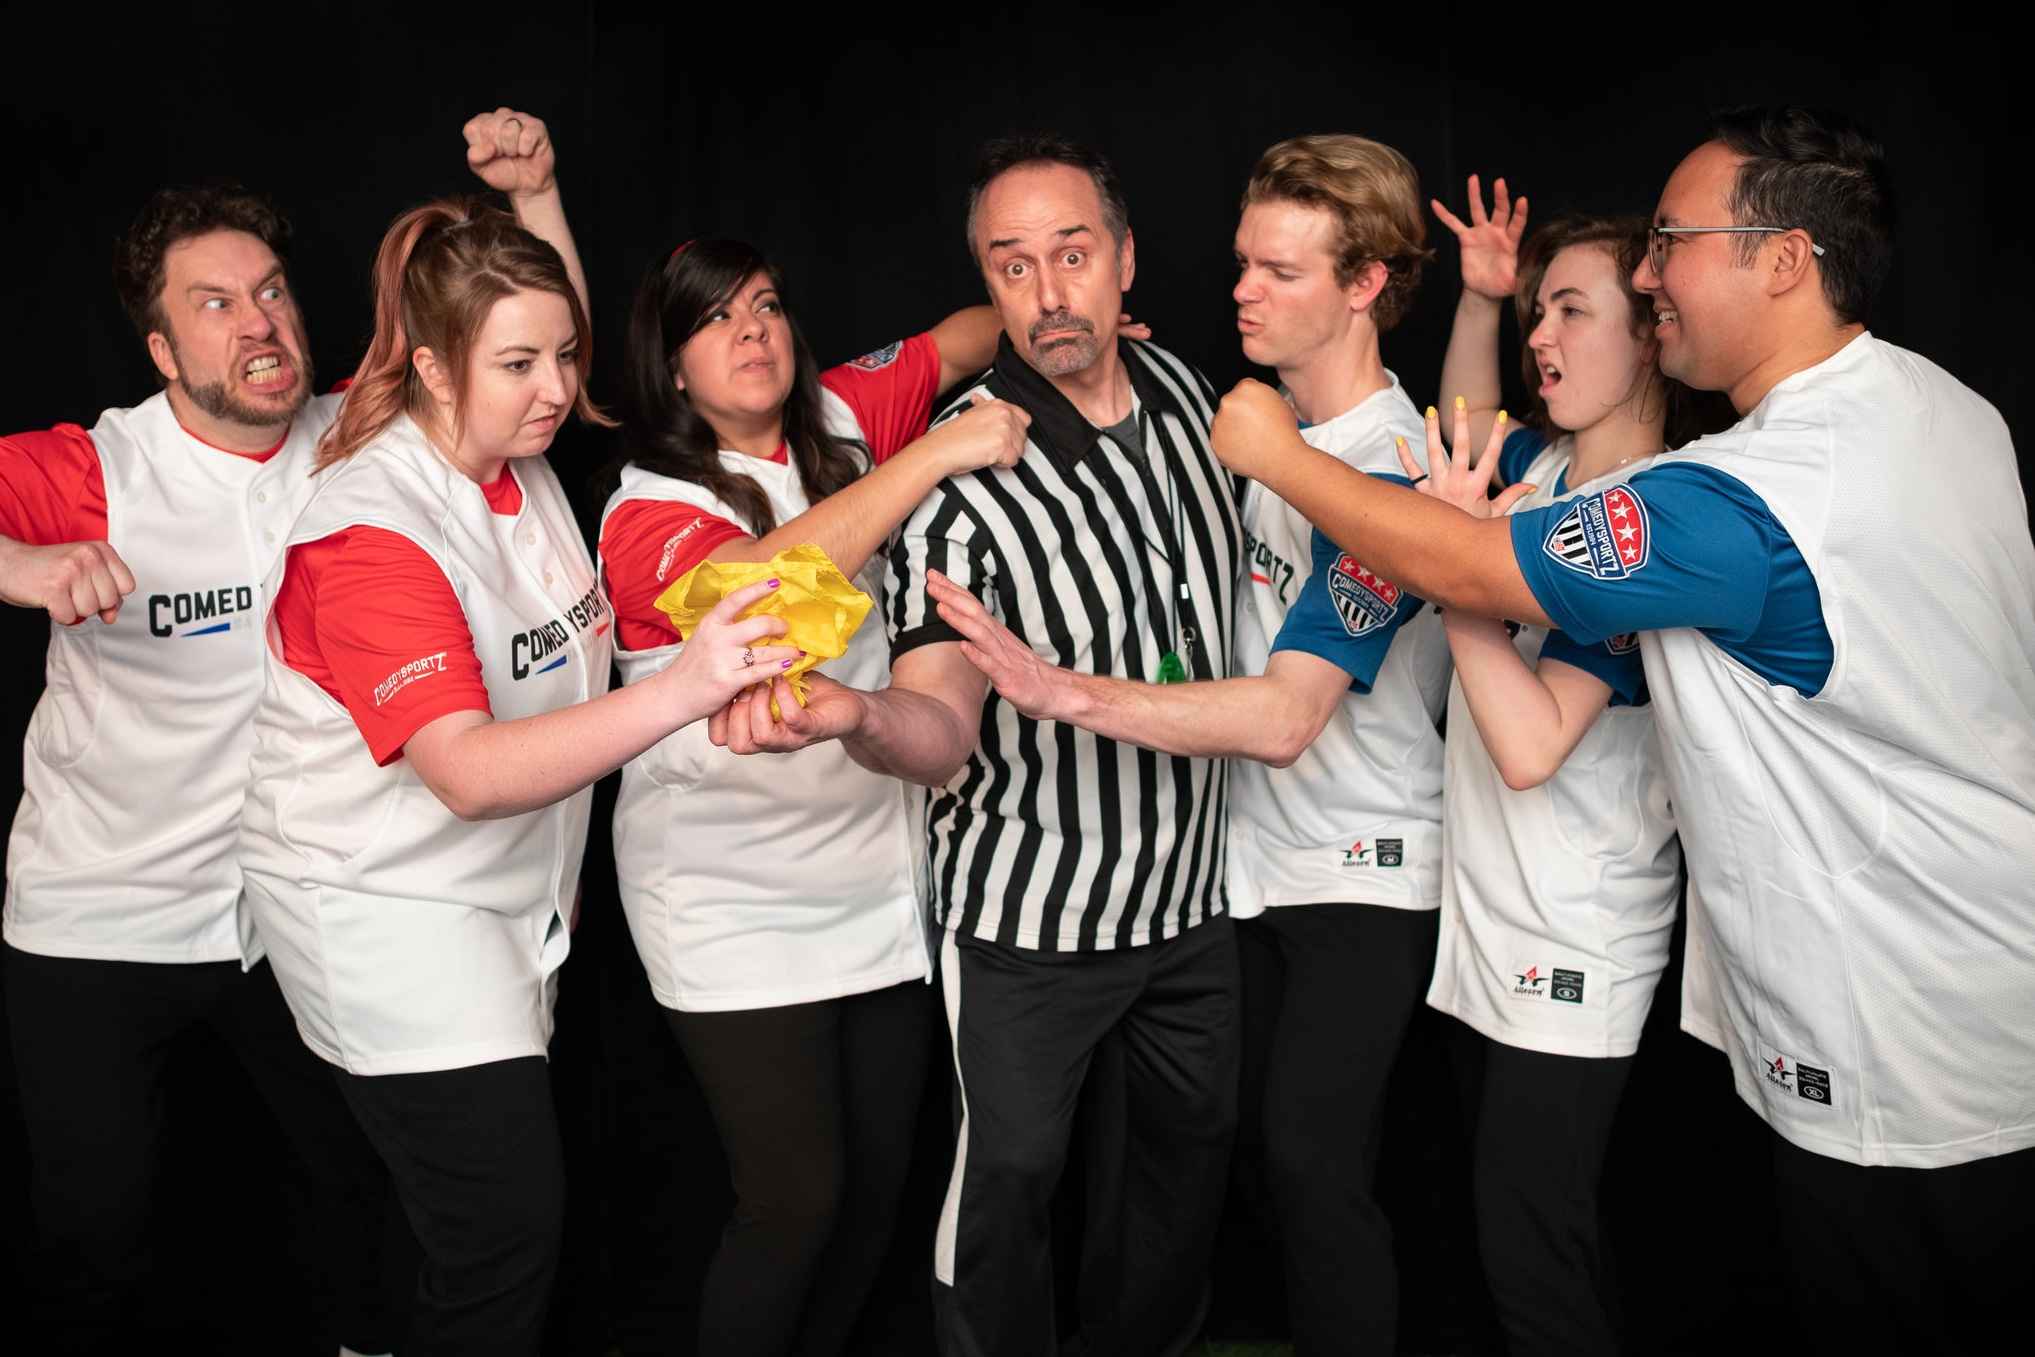 ComedySportz - Two teams of players compete in an improv match for laughs and points, with a referee getting suggestions from the audience and calling fouls. Each show is different, with different players, different games, and different audiences supplying new suggestions. The fans judge the scenes, and decide the winners and losers. And who knows, an audience member might even make it up on stage!